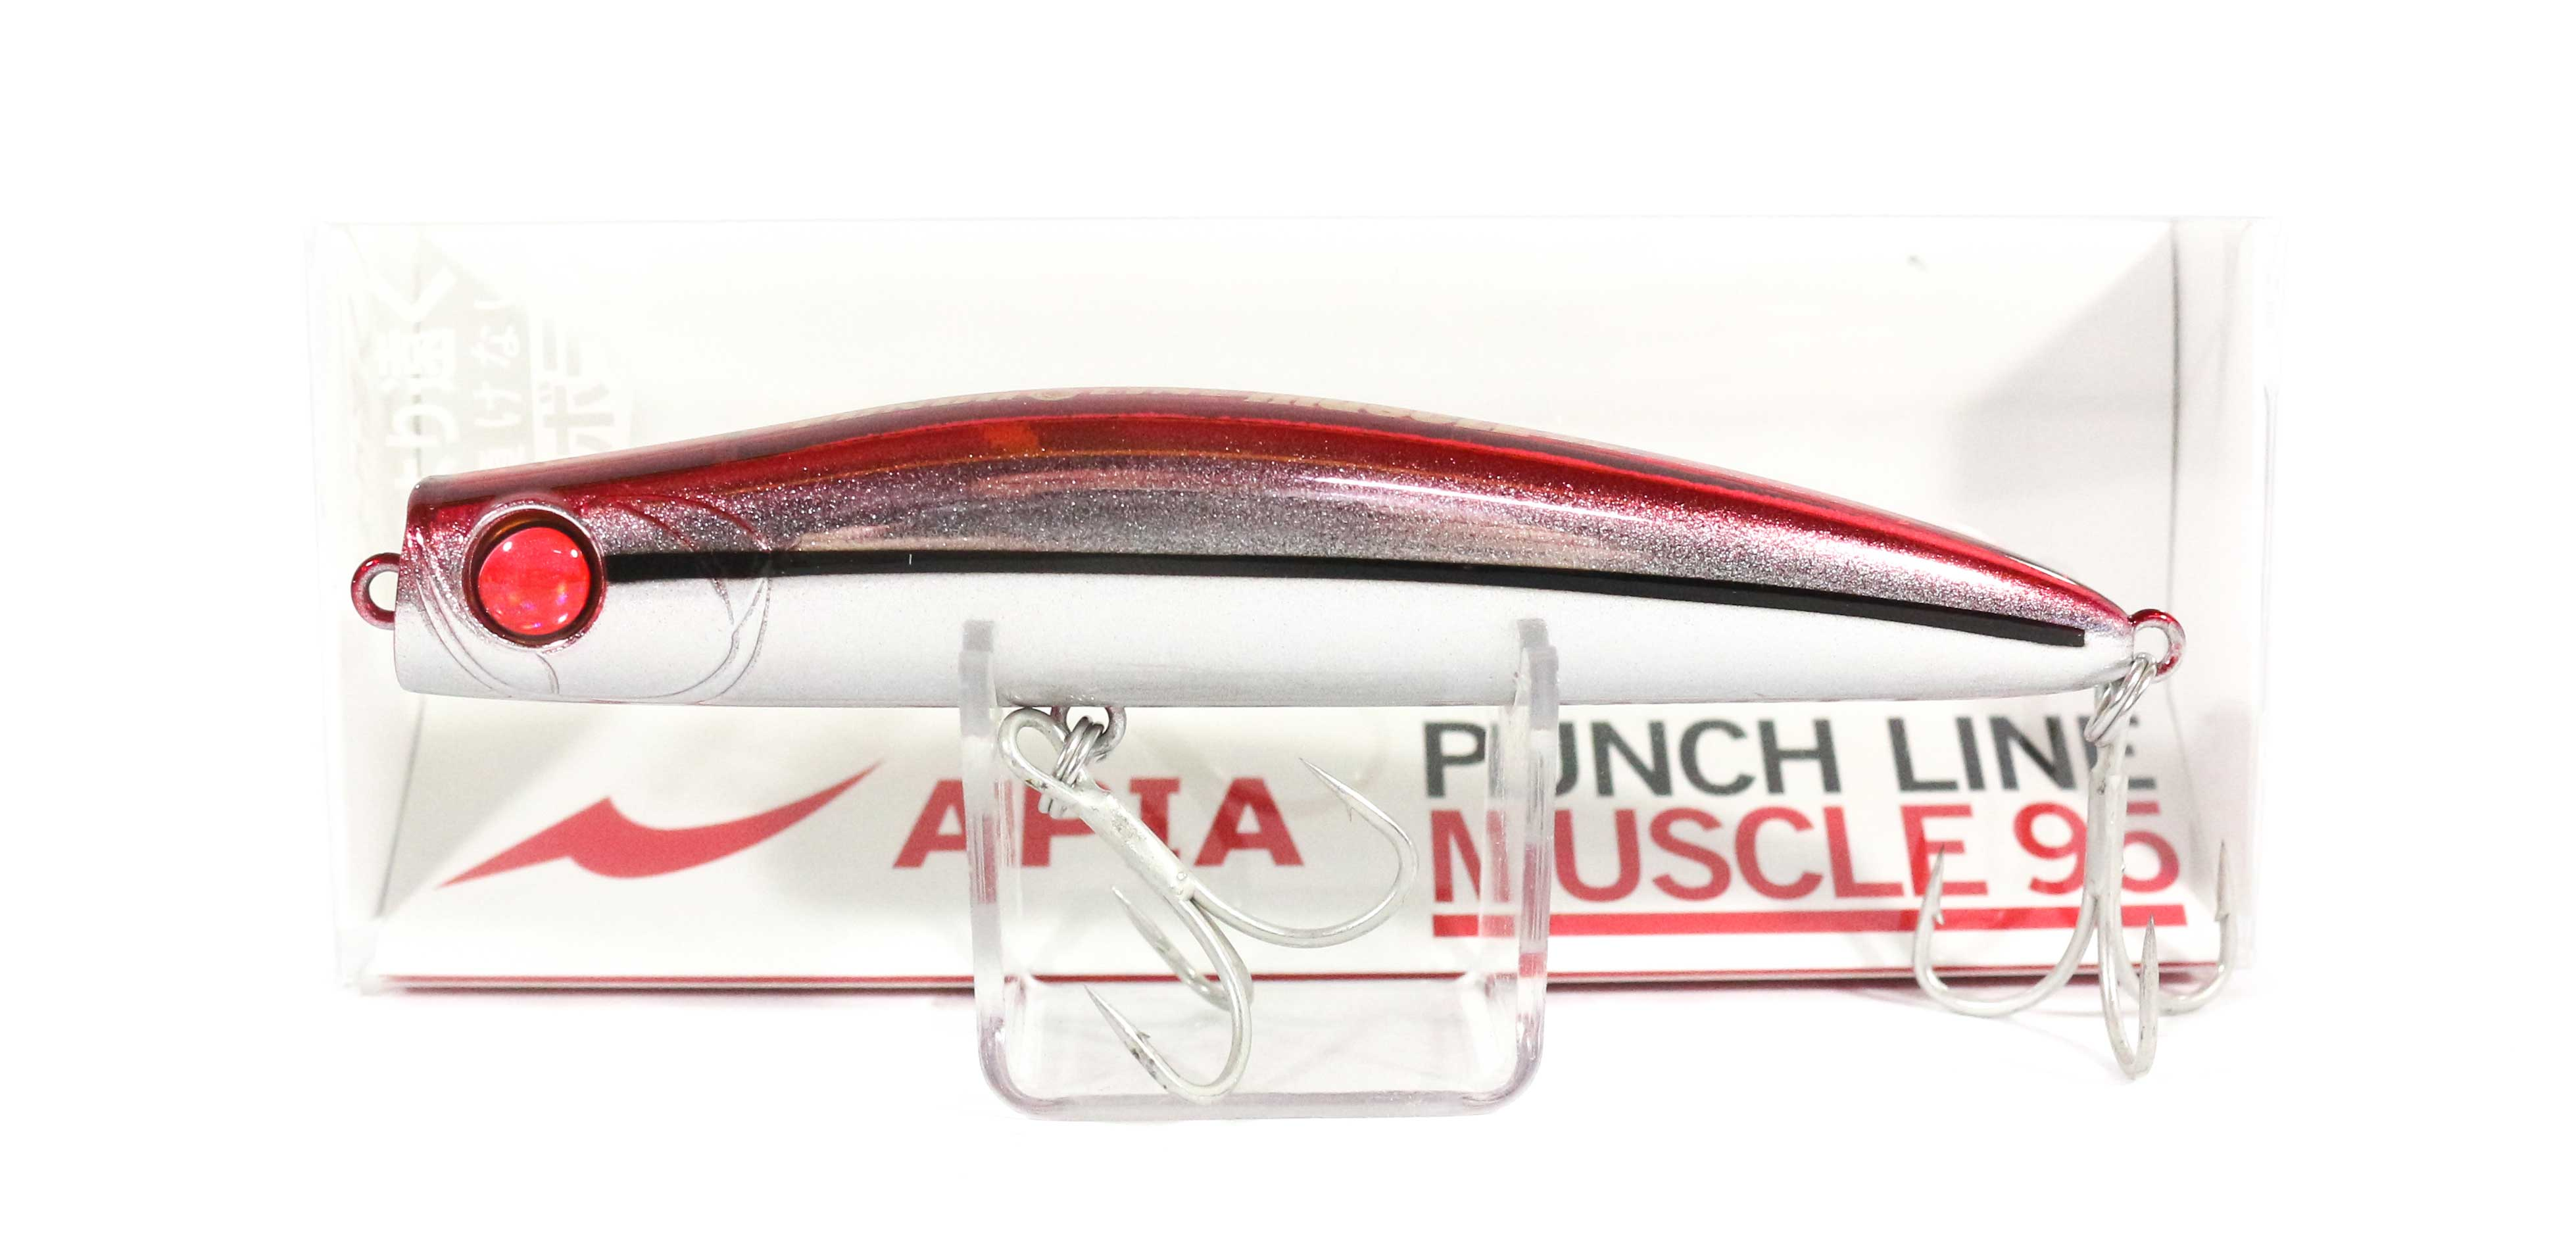 Apia Punch Line Muscle 95 Pencil Sinking Lure 11 (7941)